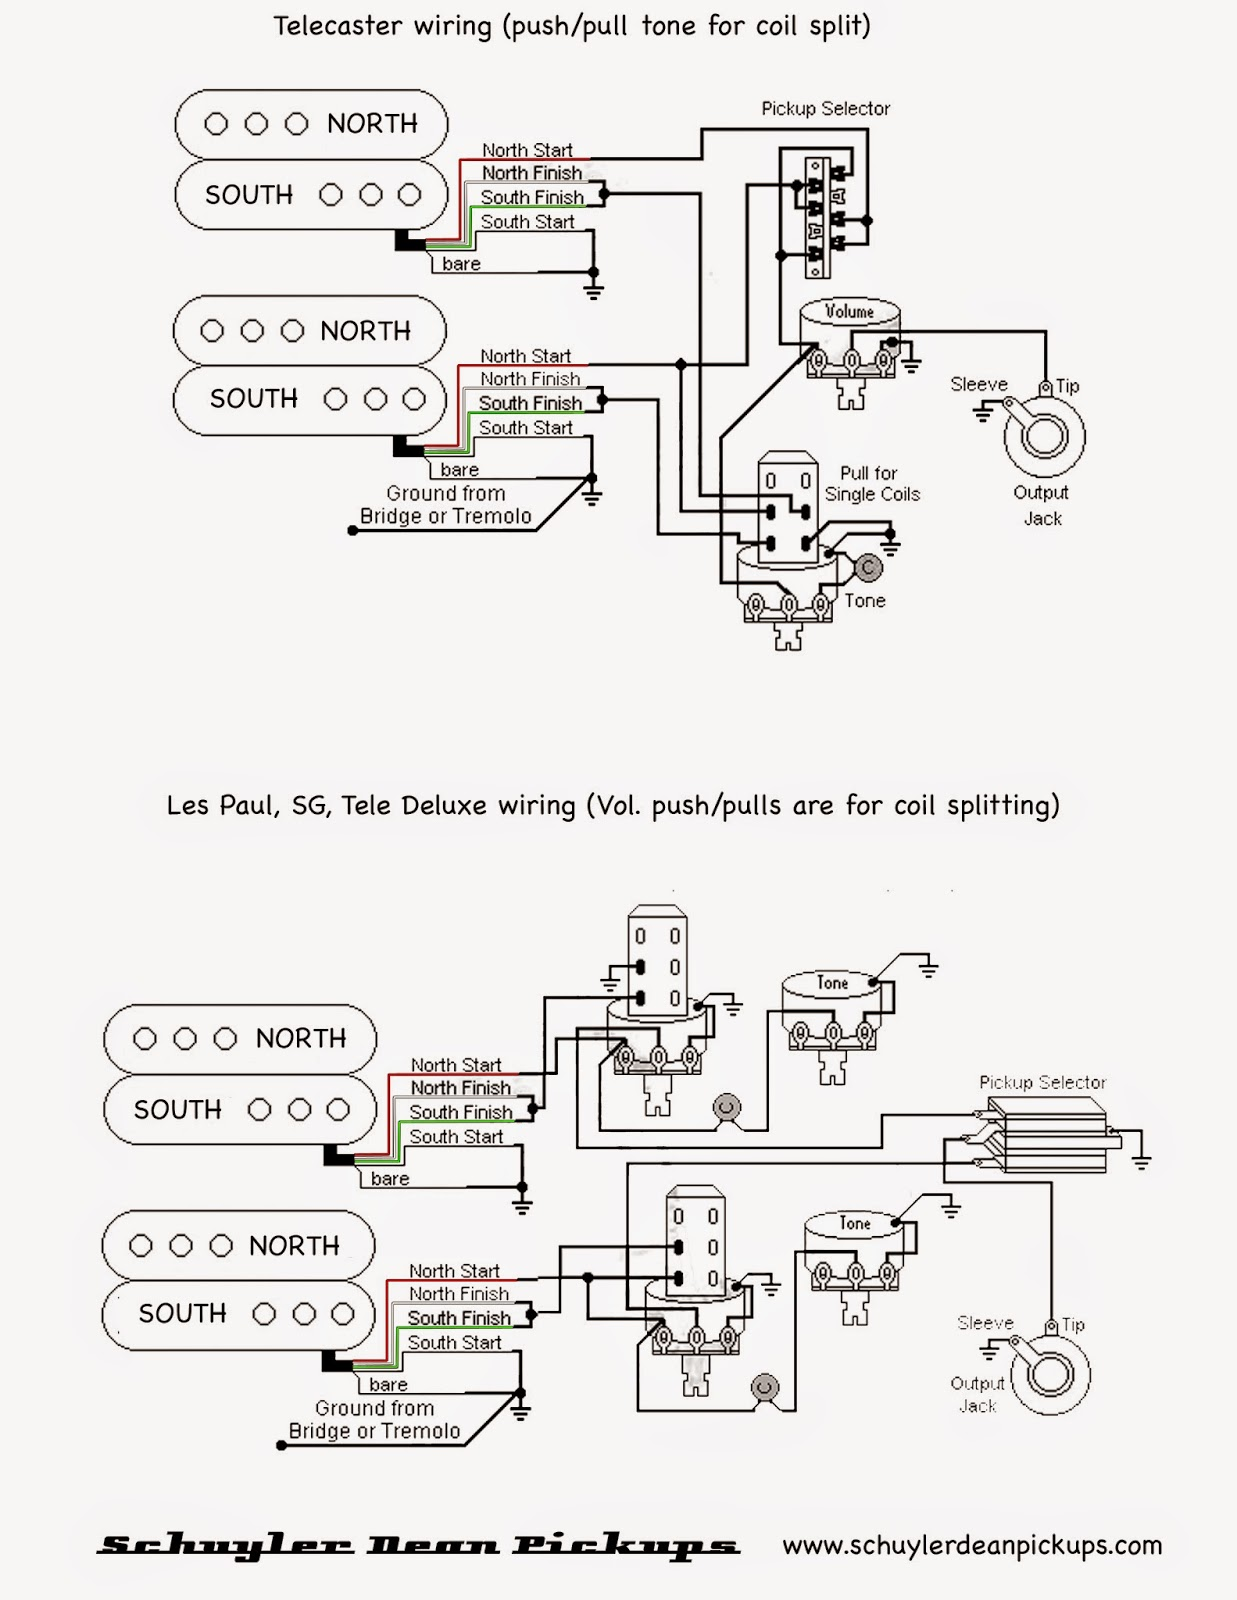 Wiring%2Bdiagram%2BTele LP schuyler dean pickups 2014 emg coil tapping wiring diagrams at bayanpartner.co